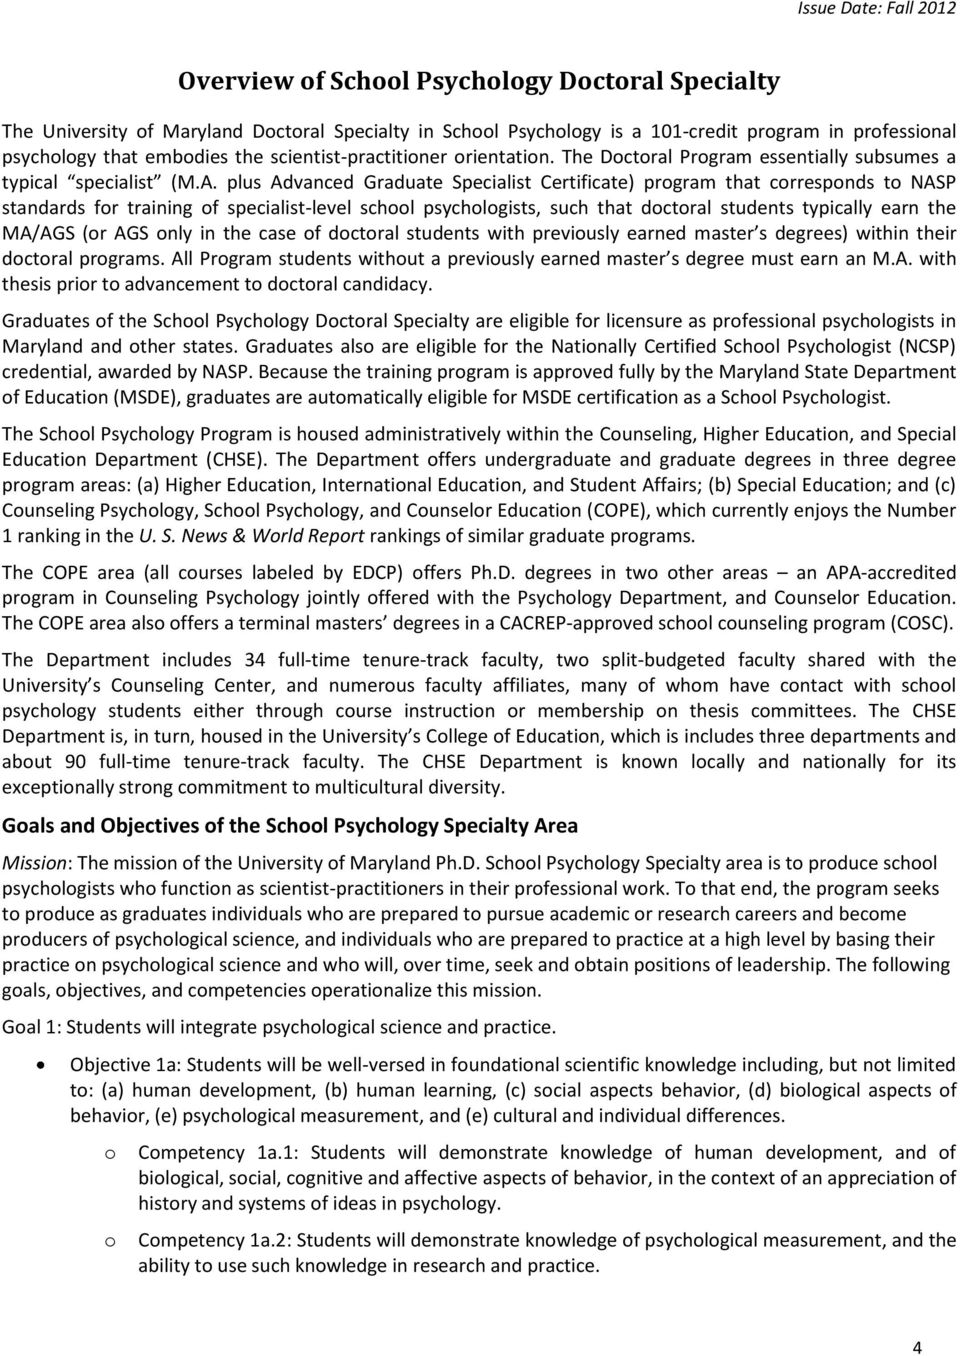 plus Advanced Graduate Specialist Certificate) program that corresponds to NASP standards for training of specialist-level school psychologists, such that doctoral students typically earn the MA/AGS